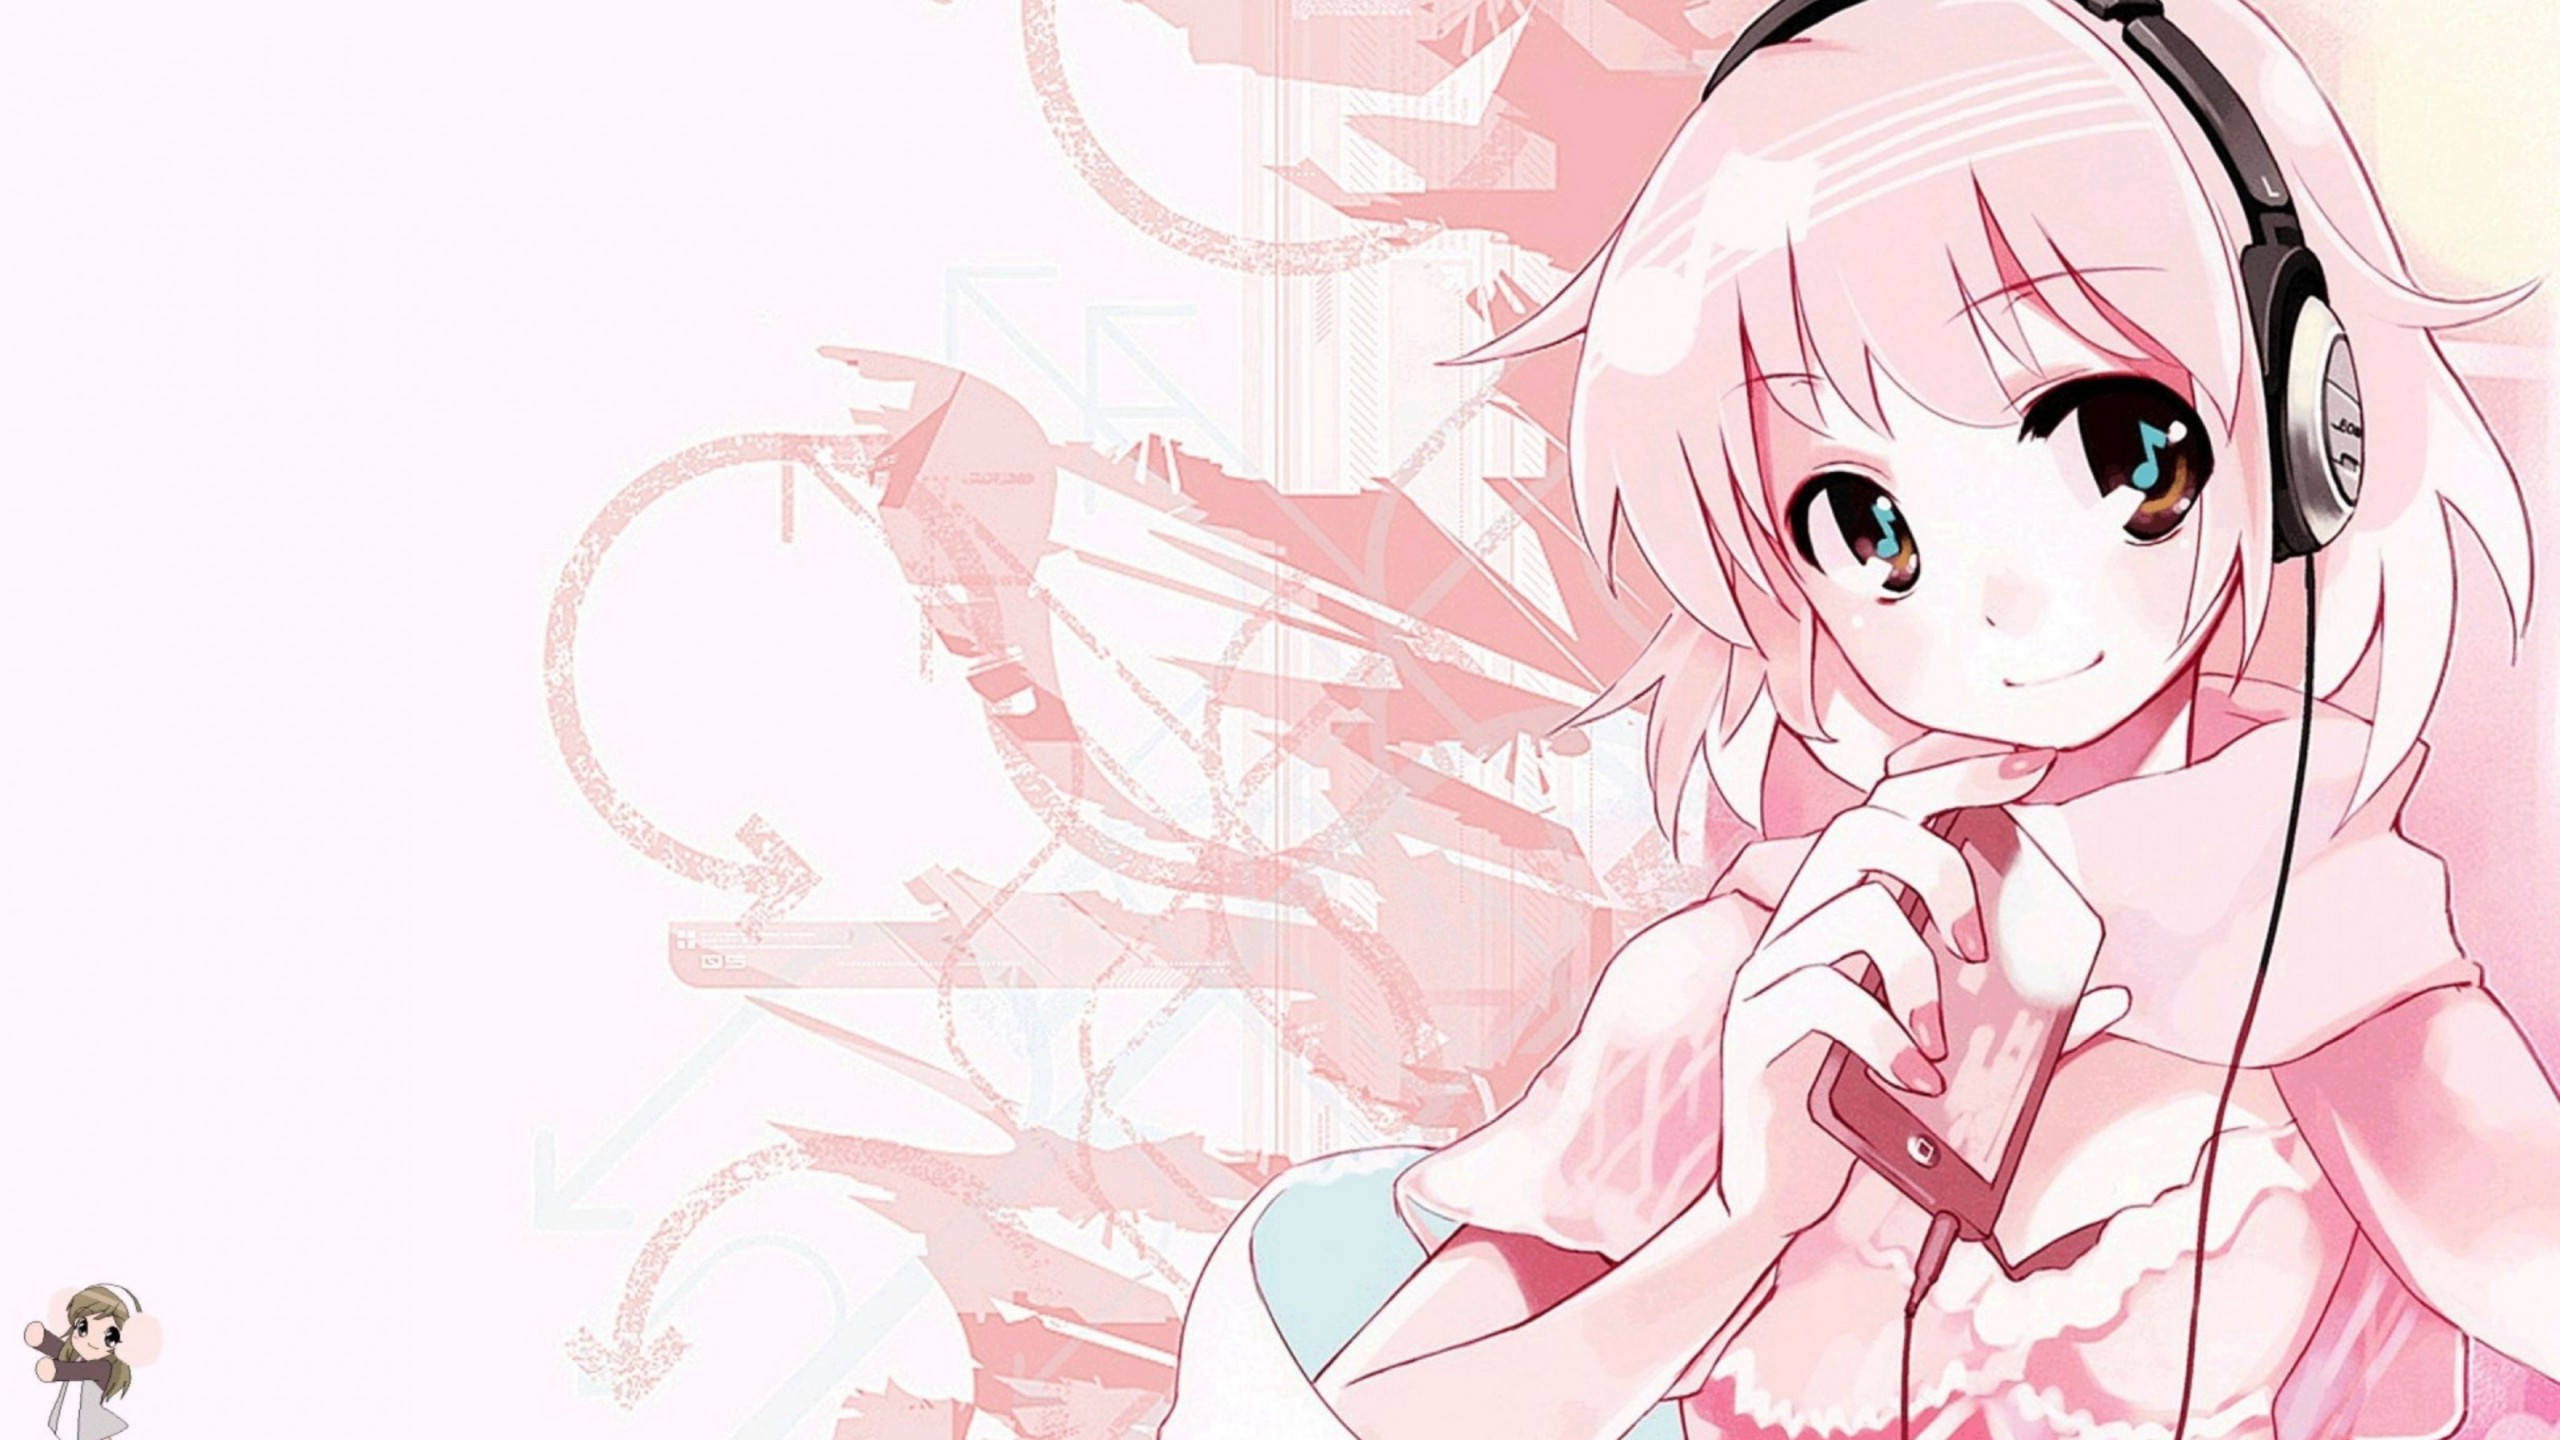 Anime Girl Epic Wallpapers Pink Anime Music Wallpaper Desktop Hd Wallpaper